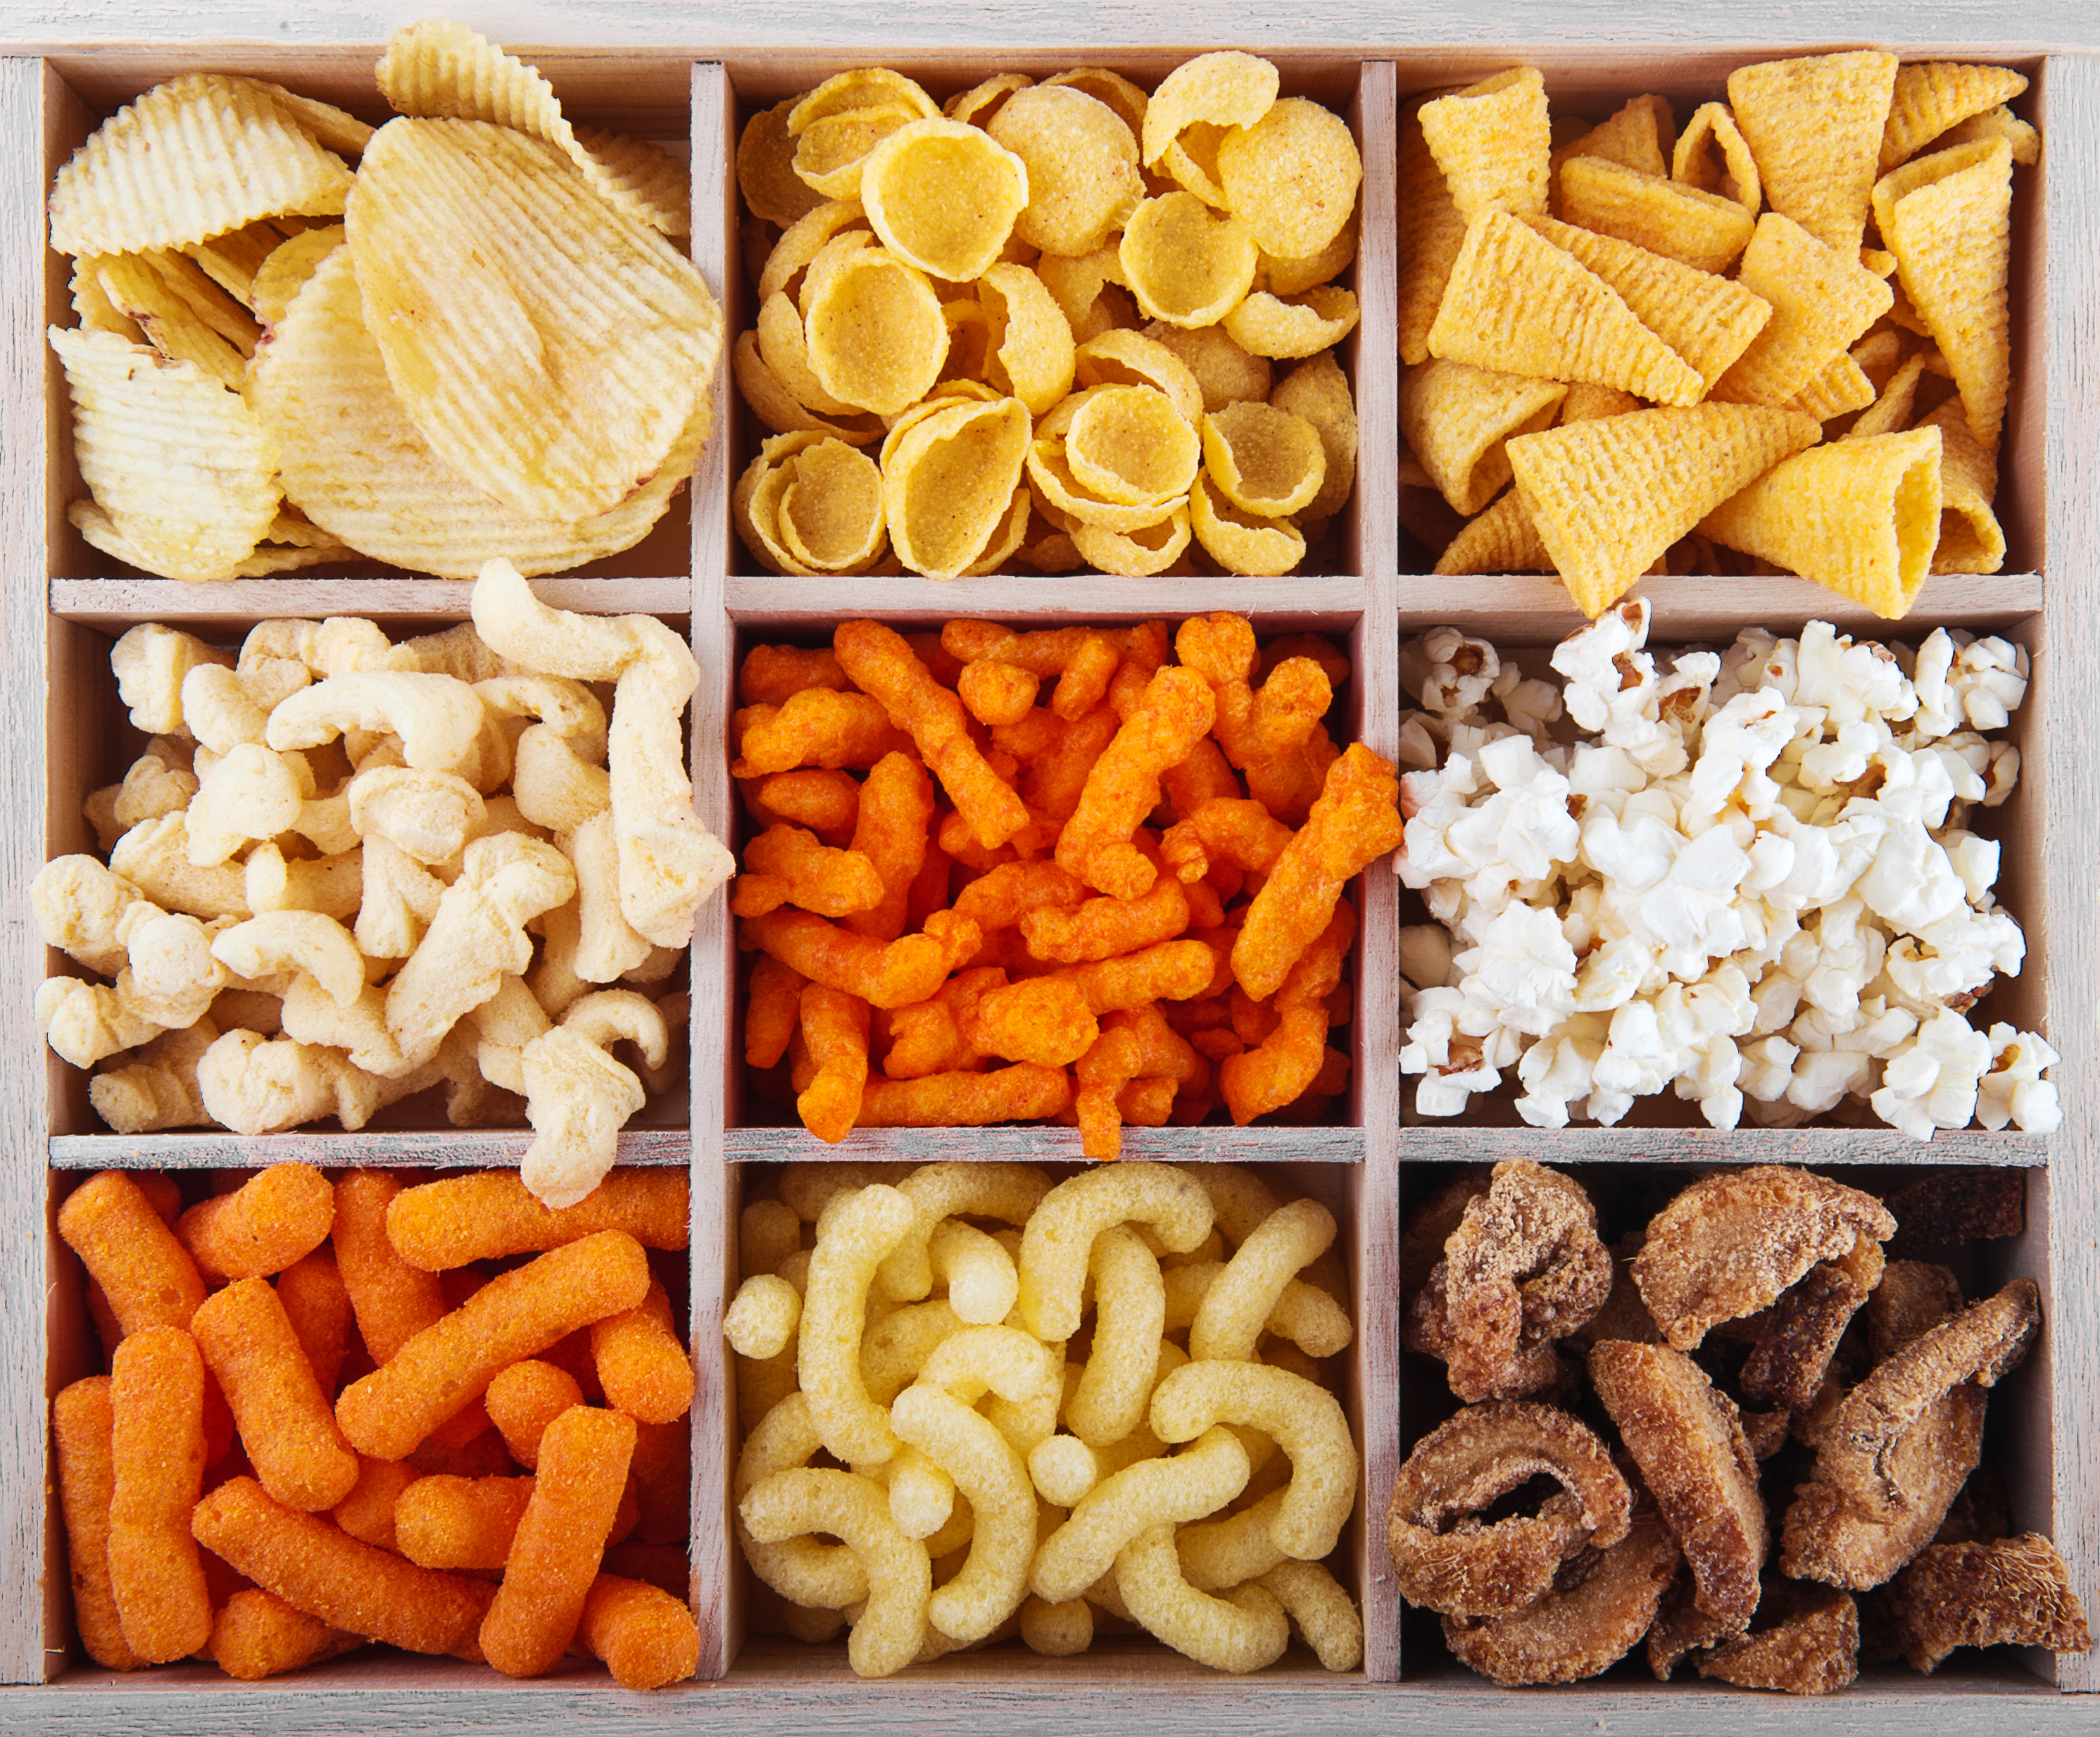 Box of unique snack mixes from Top U.S. Family Travel Blog, Travel With A Plan